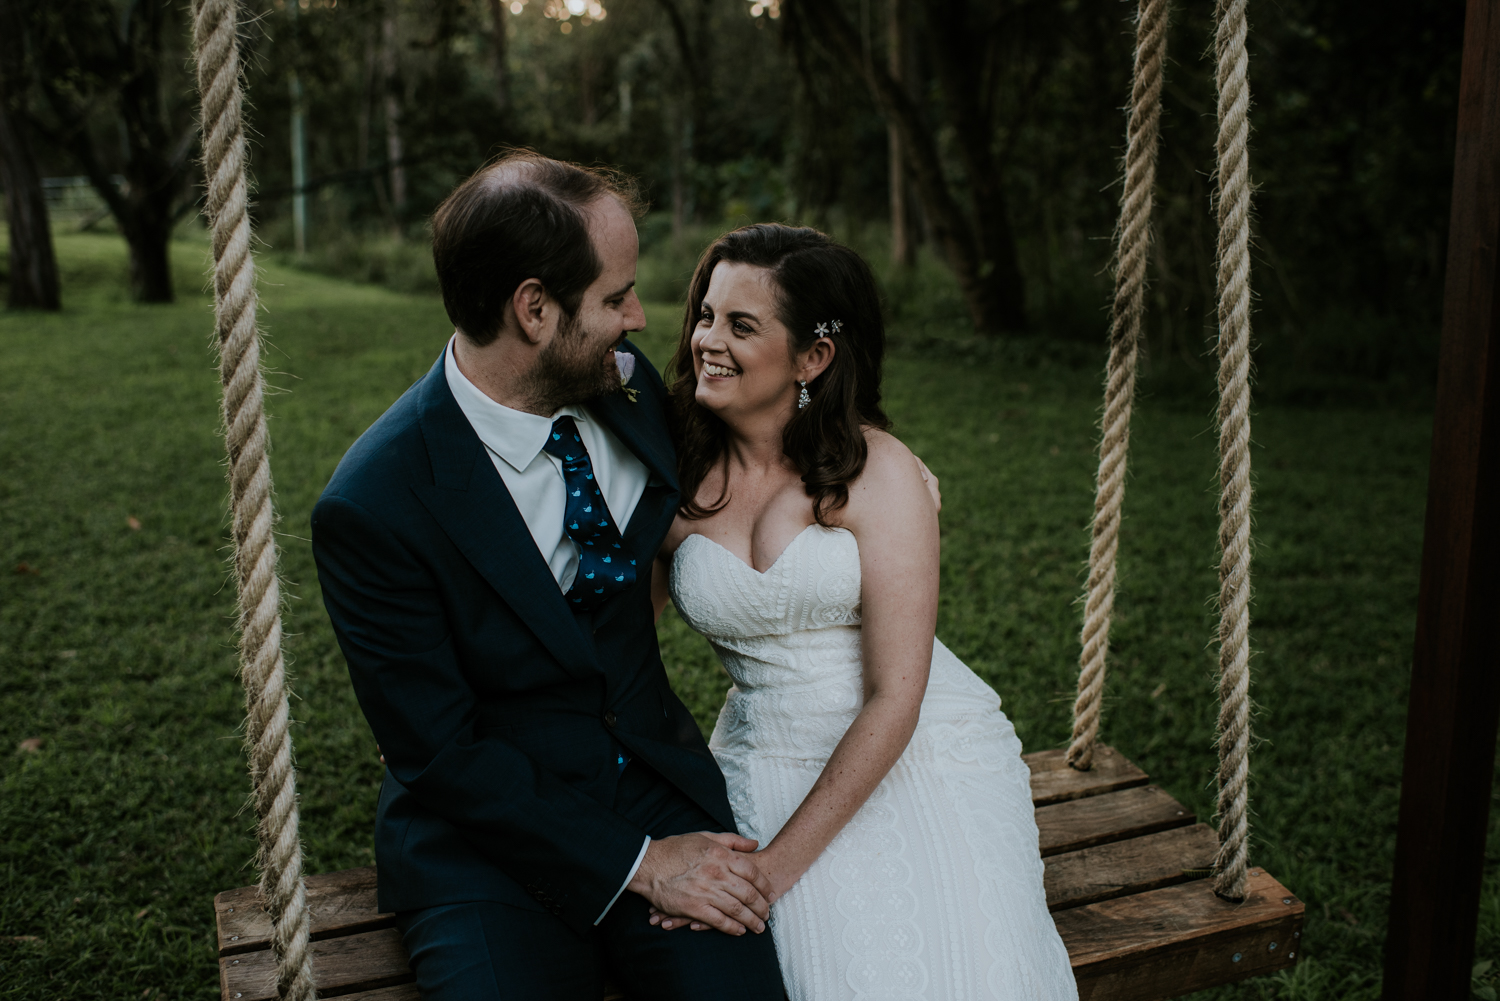 Brisbane Wedding Photographer | Bundaleer Rainforest Gardens-51.jpg